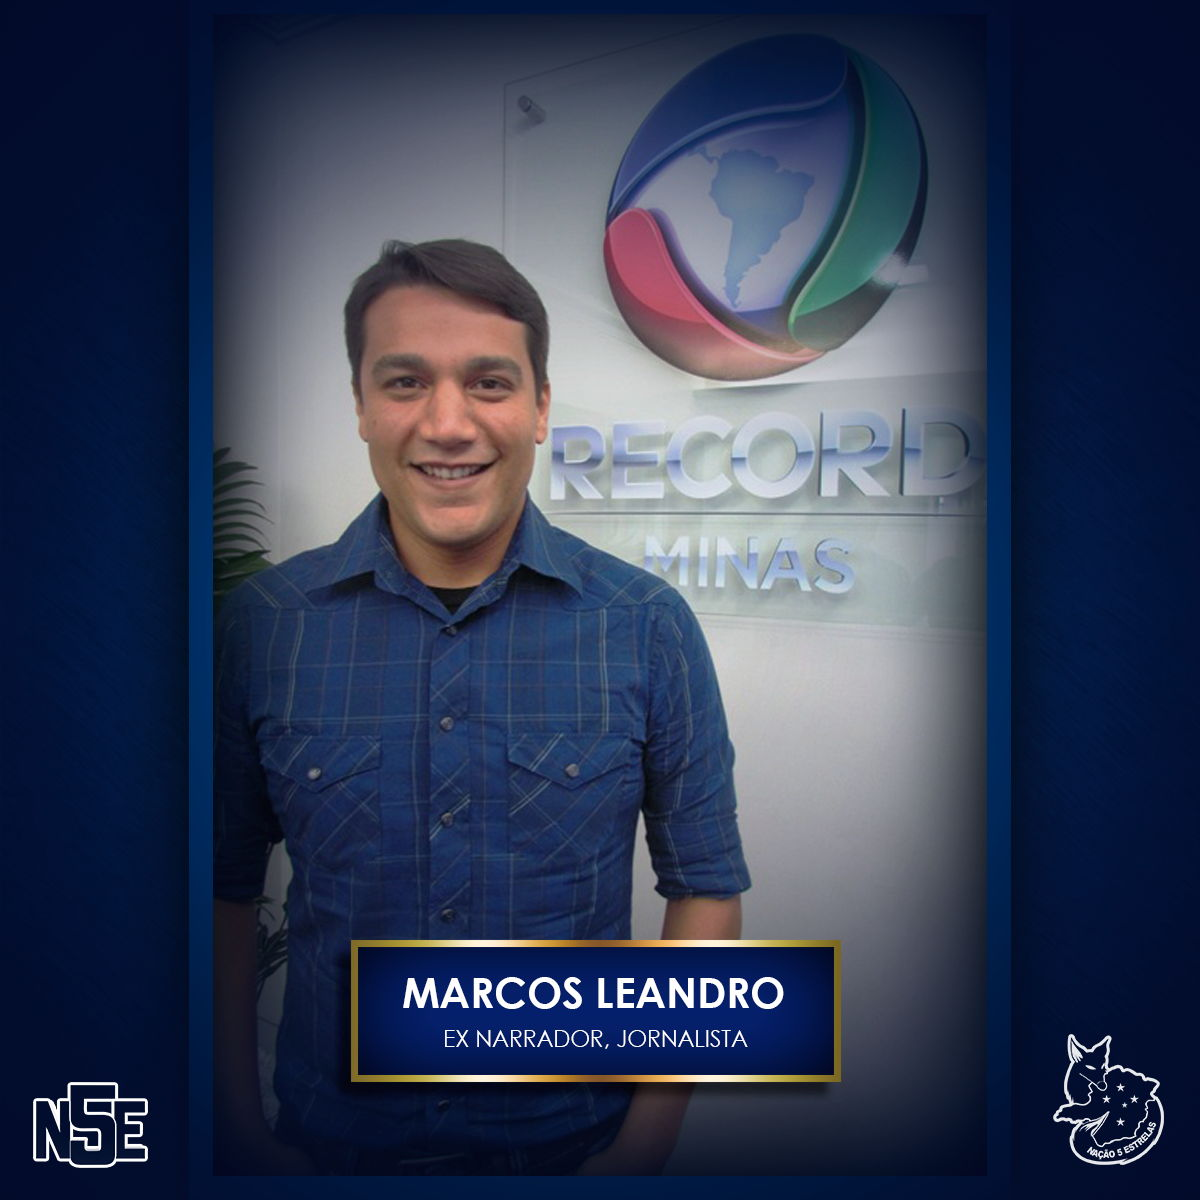 Marcos Leandro